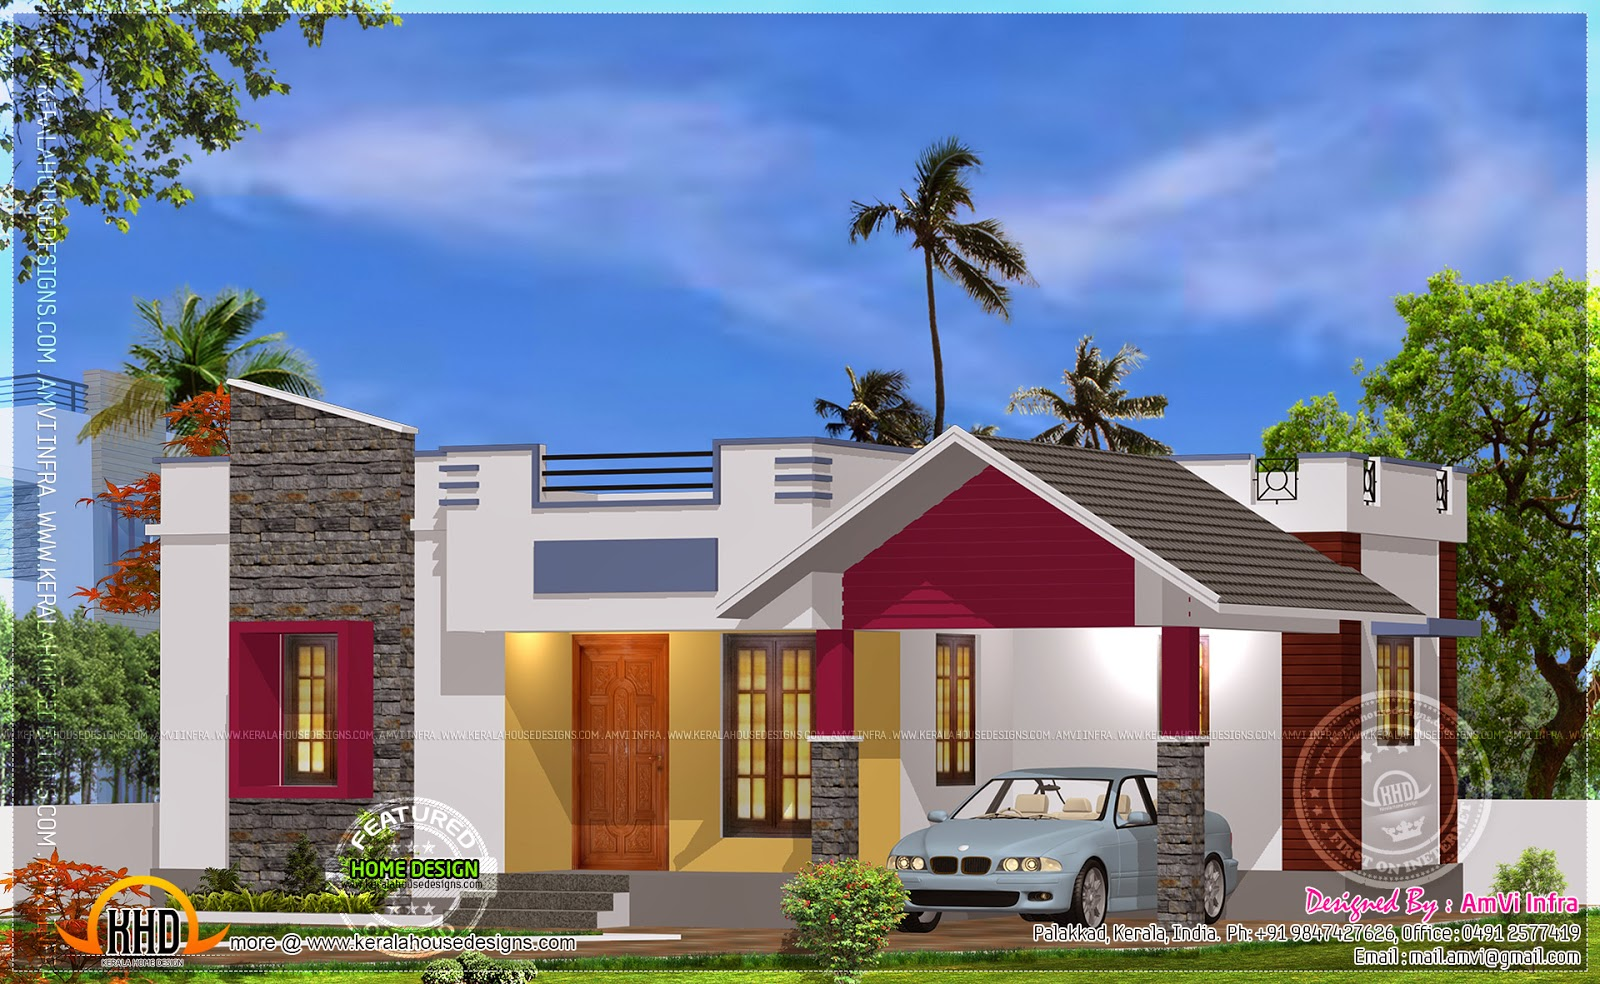 Round house design keralahousedesigns for Home design 900 square